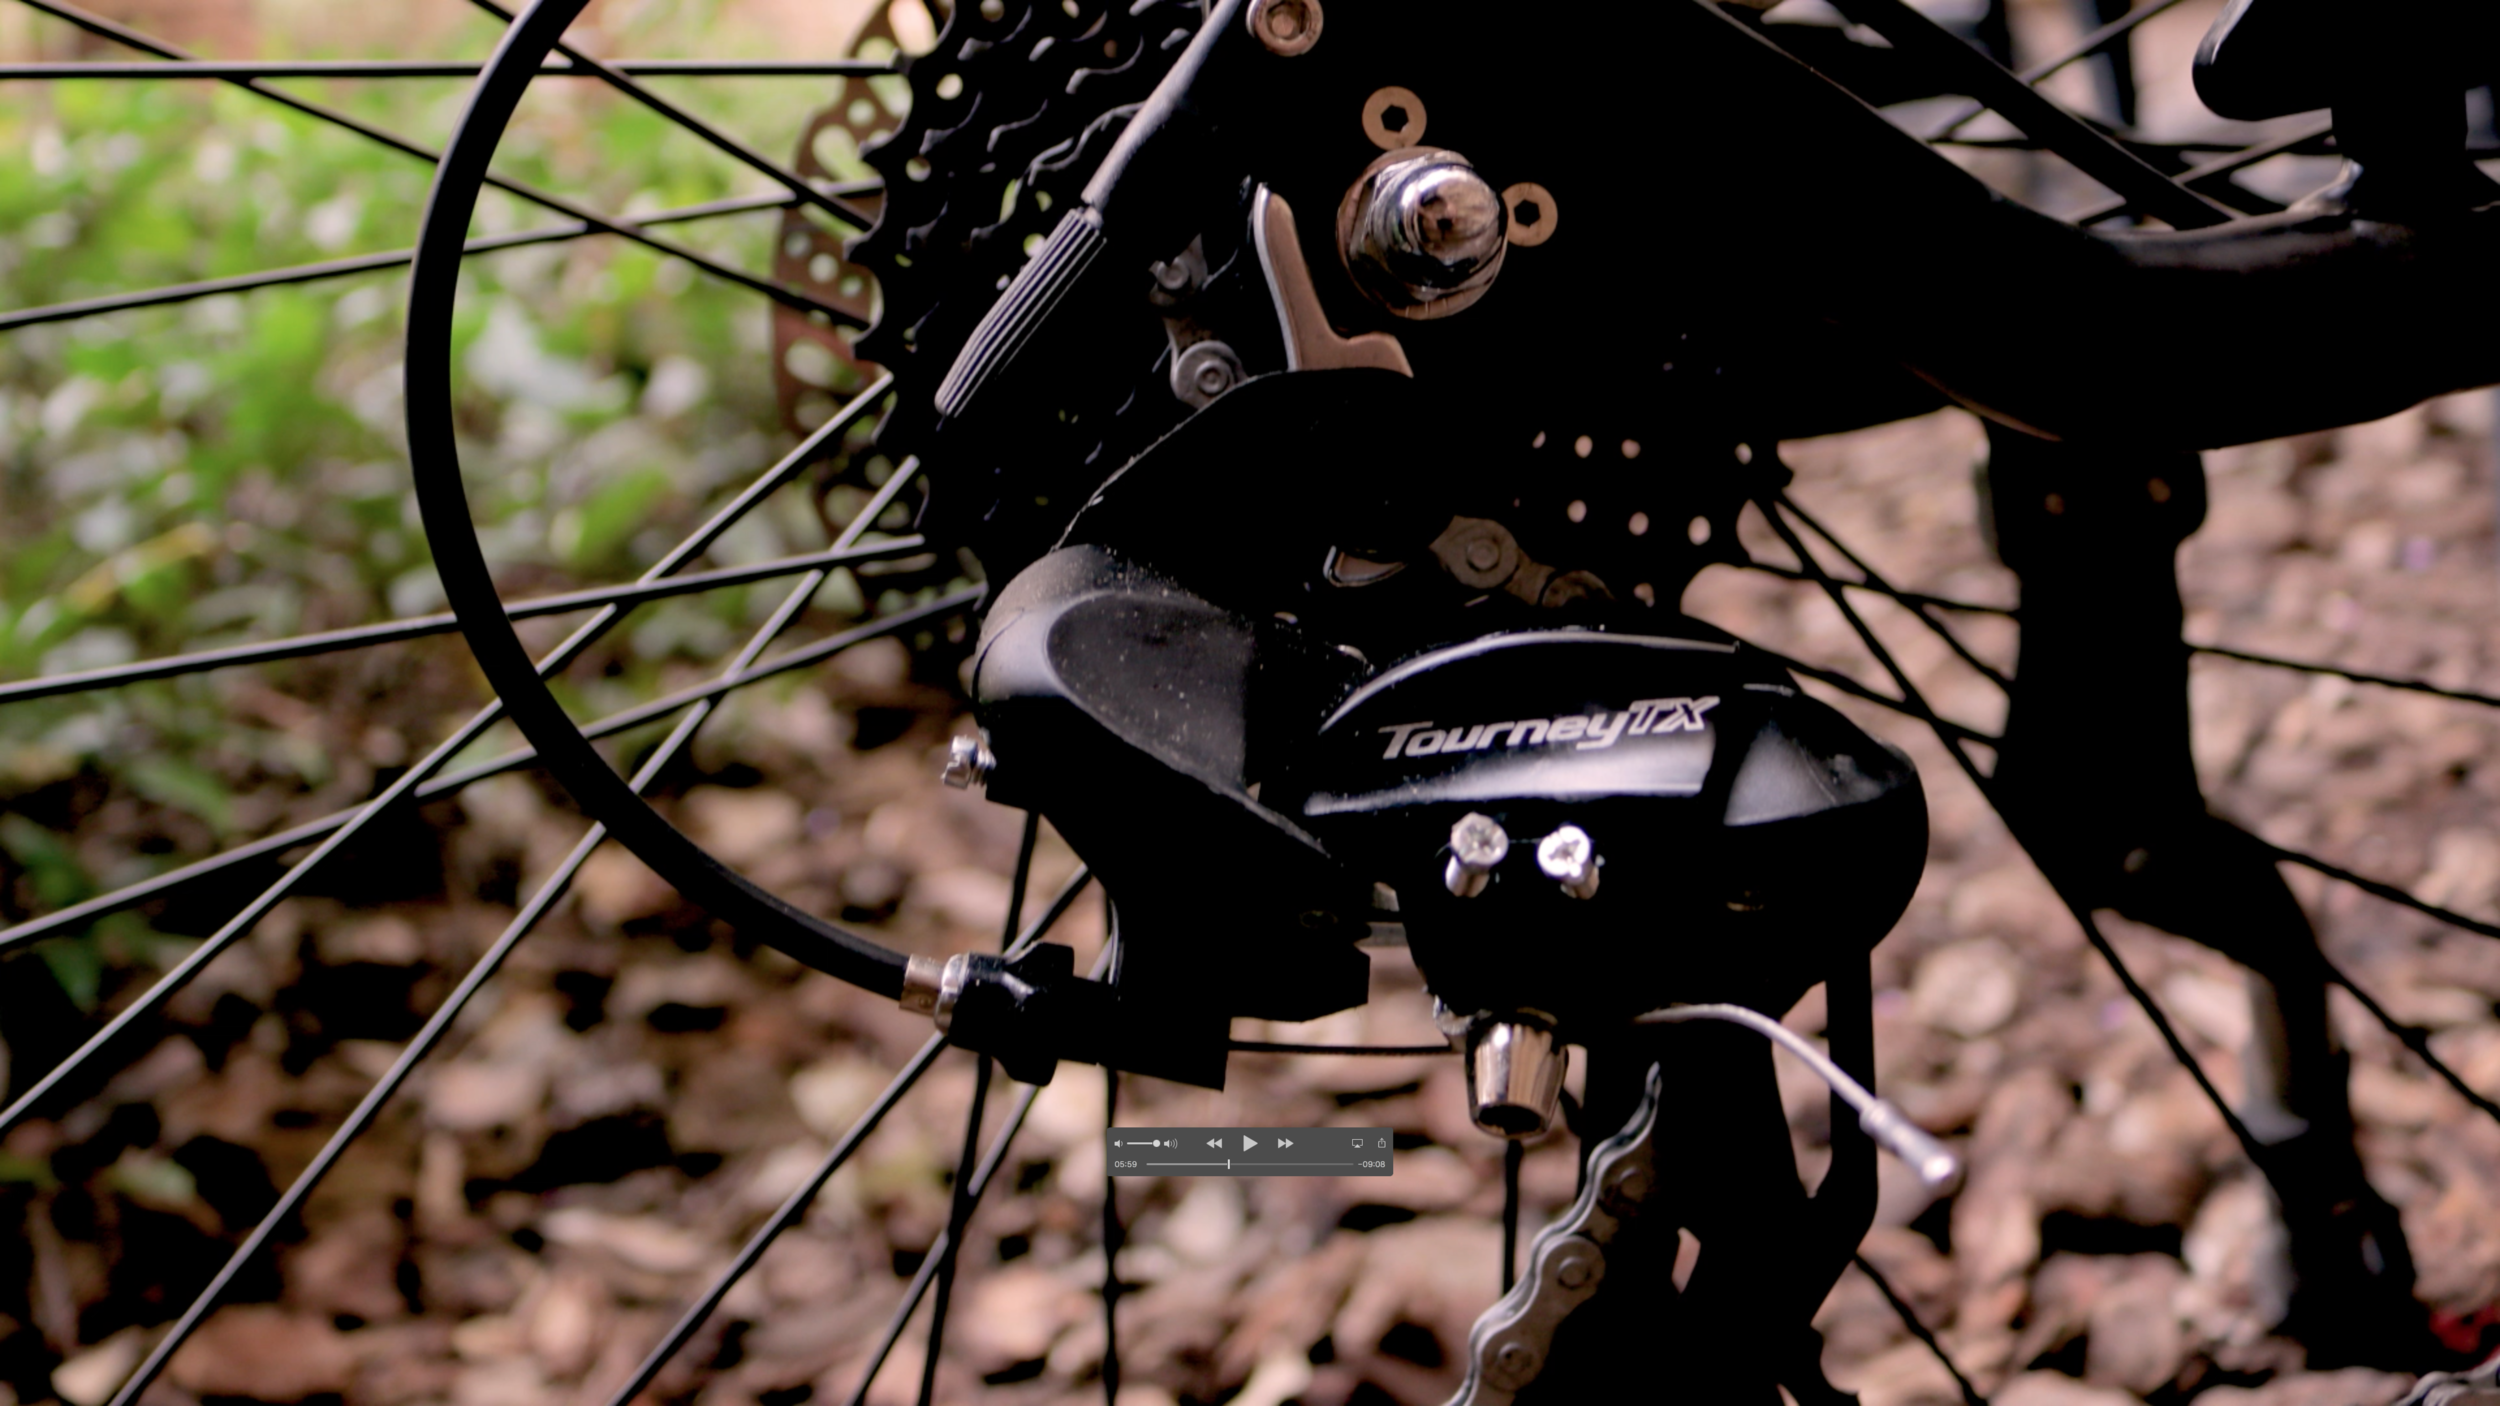 electrified-reviews-populo-scout-electric-bike-review-shimano-tourney-derailleur.png